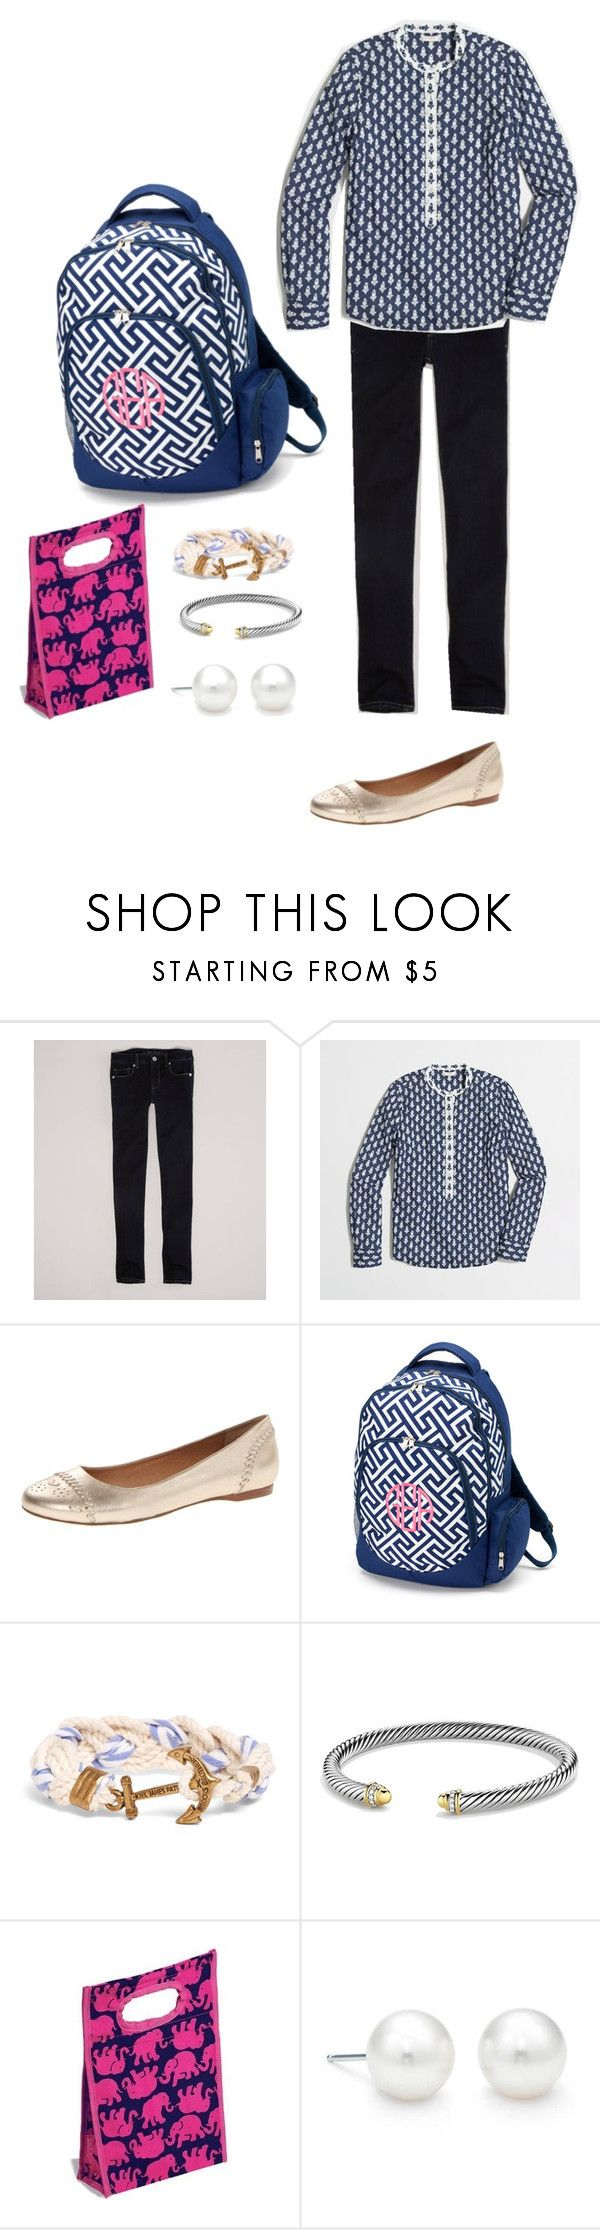 """""""School Tomorrow"""" by ohsnapitsal ❤ liked on Polyvore featuring American Eagle Outfitters, J.Crew, Jack Rogers, Brooks Brothers, David Yurman, Lilly Pulitzer and Tiffany & Co."""